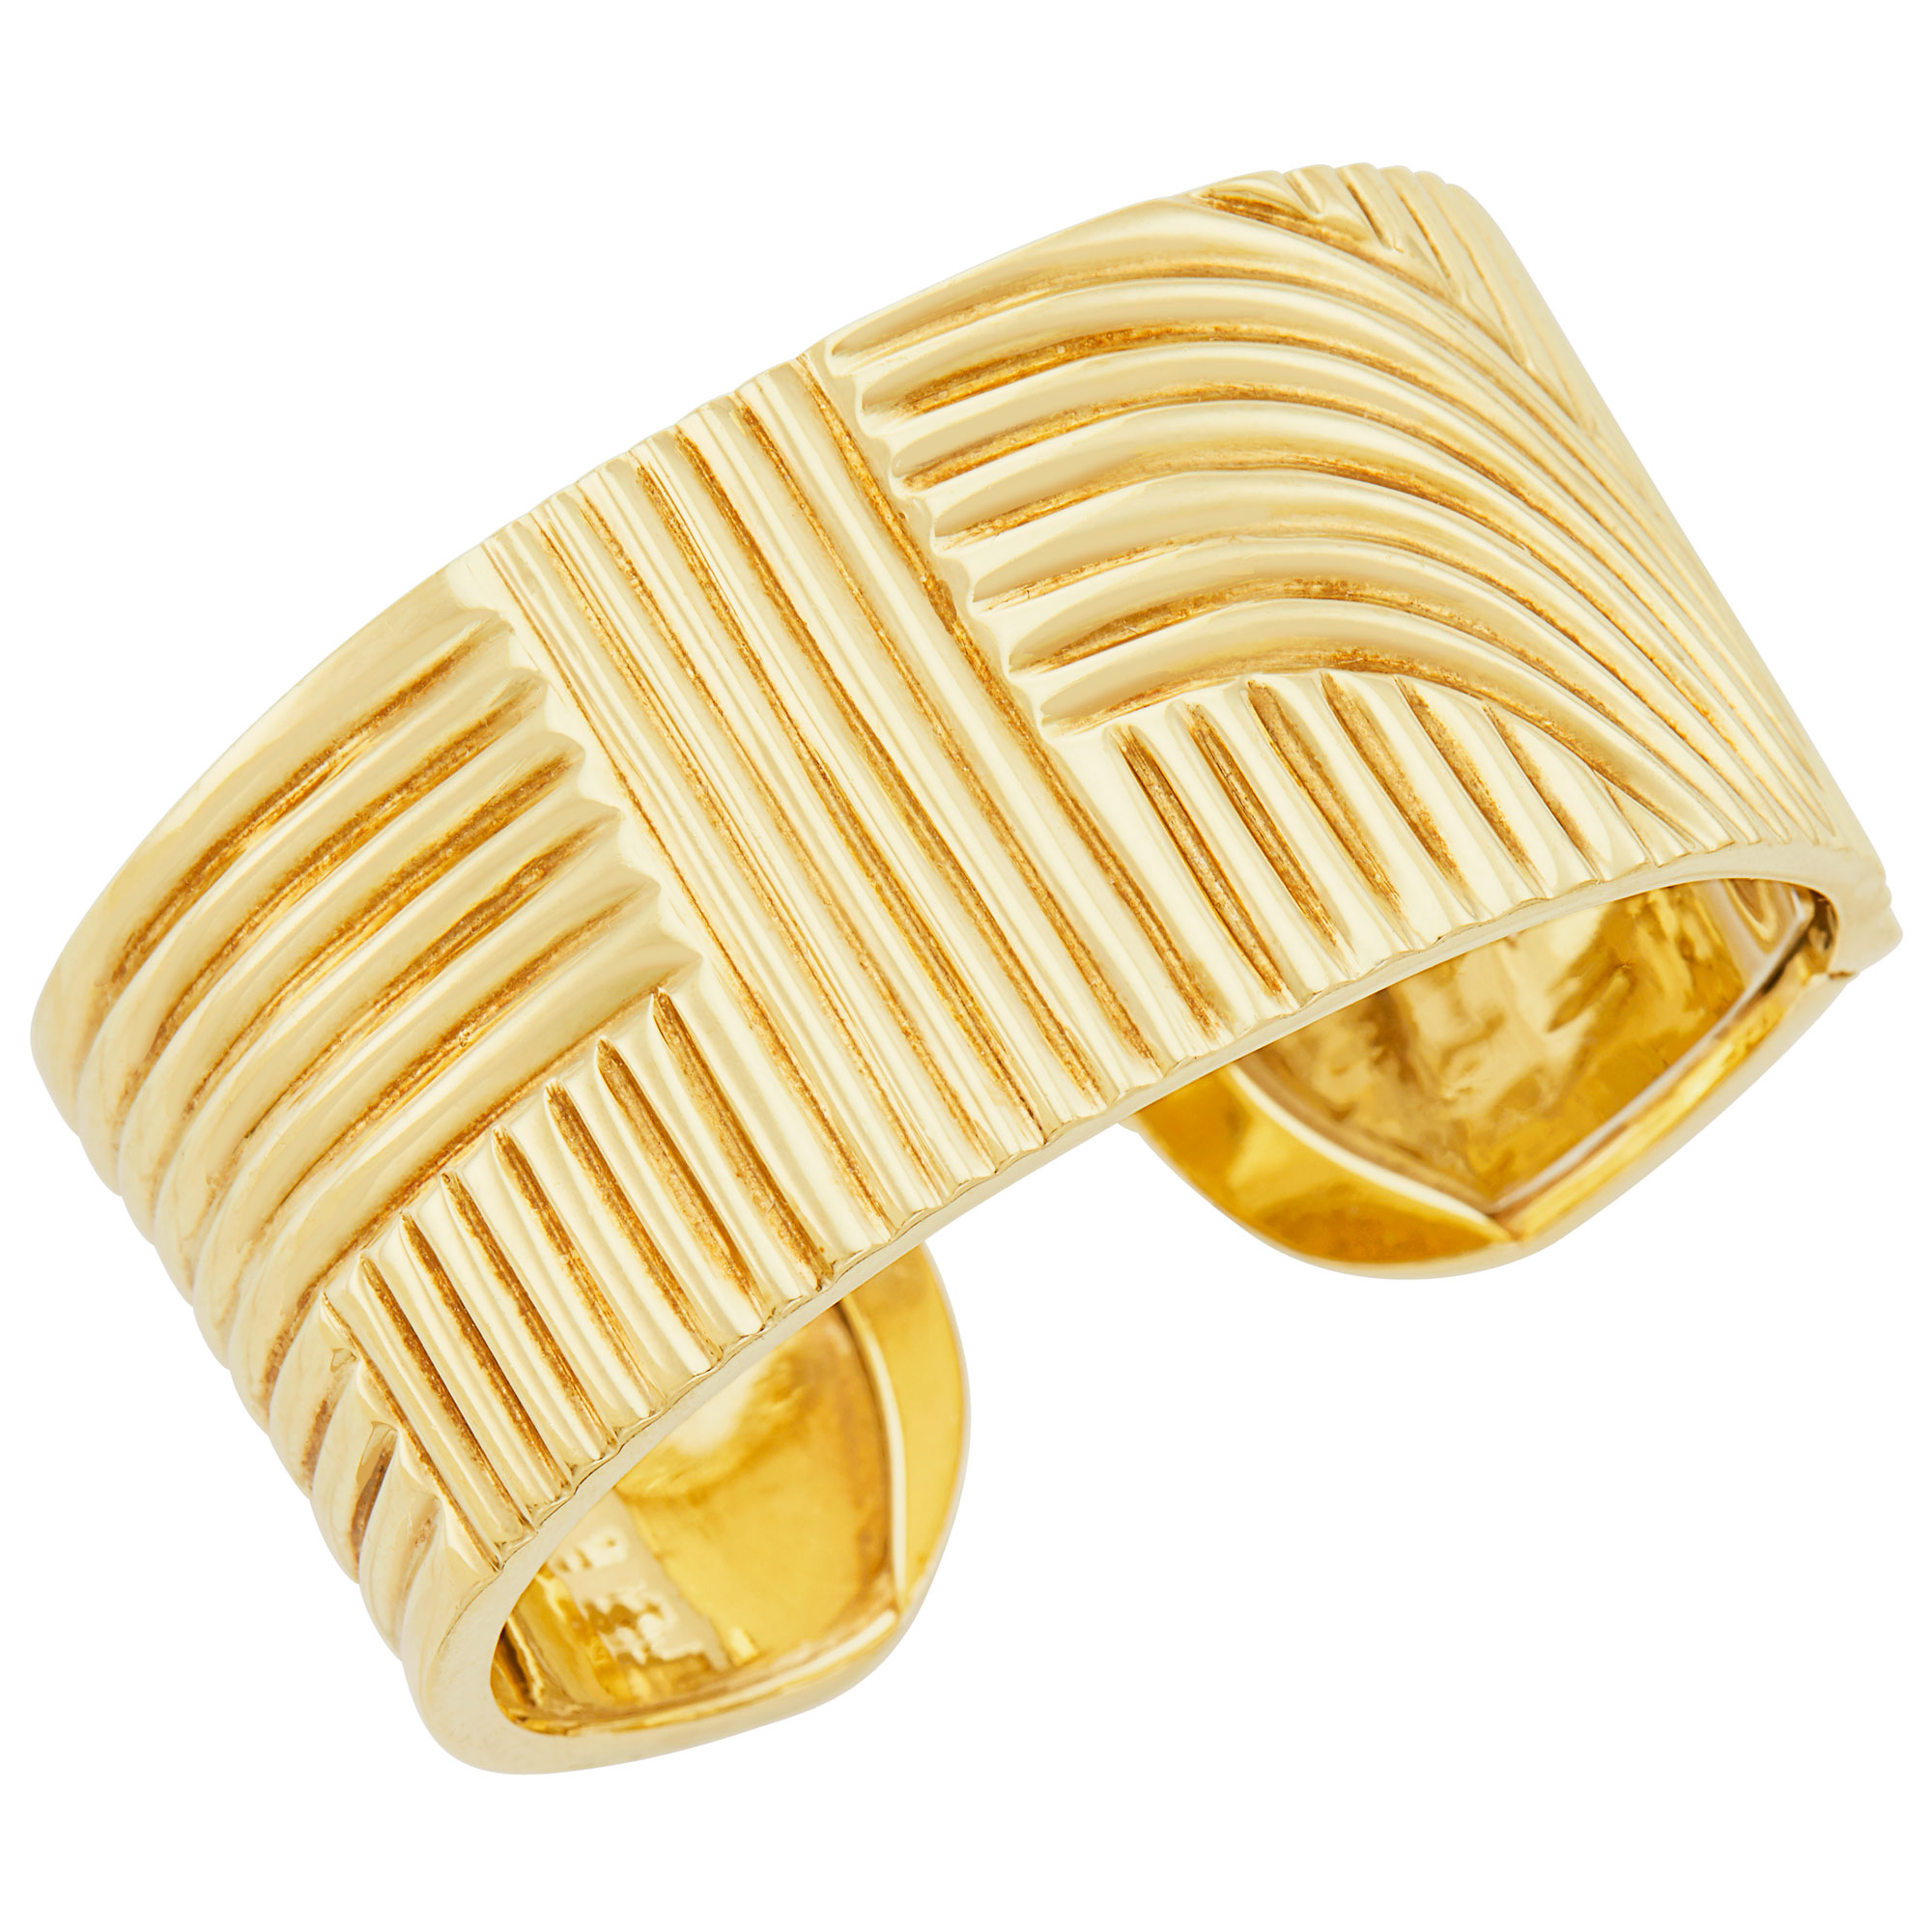 Lot image - Ridged Gold Cuff Bangle Bracelet